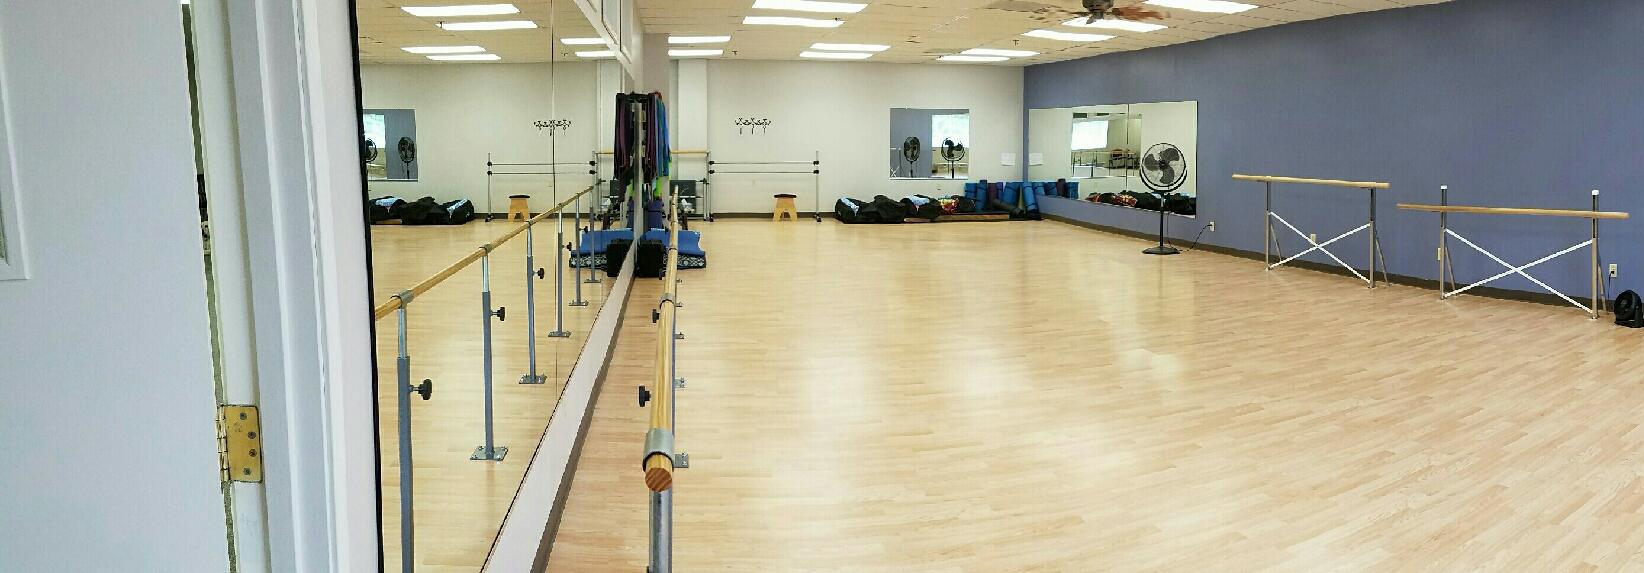 Check out our dance, yoga and group class studio at FitnessWorks, Inc